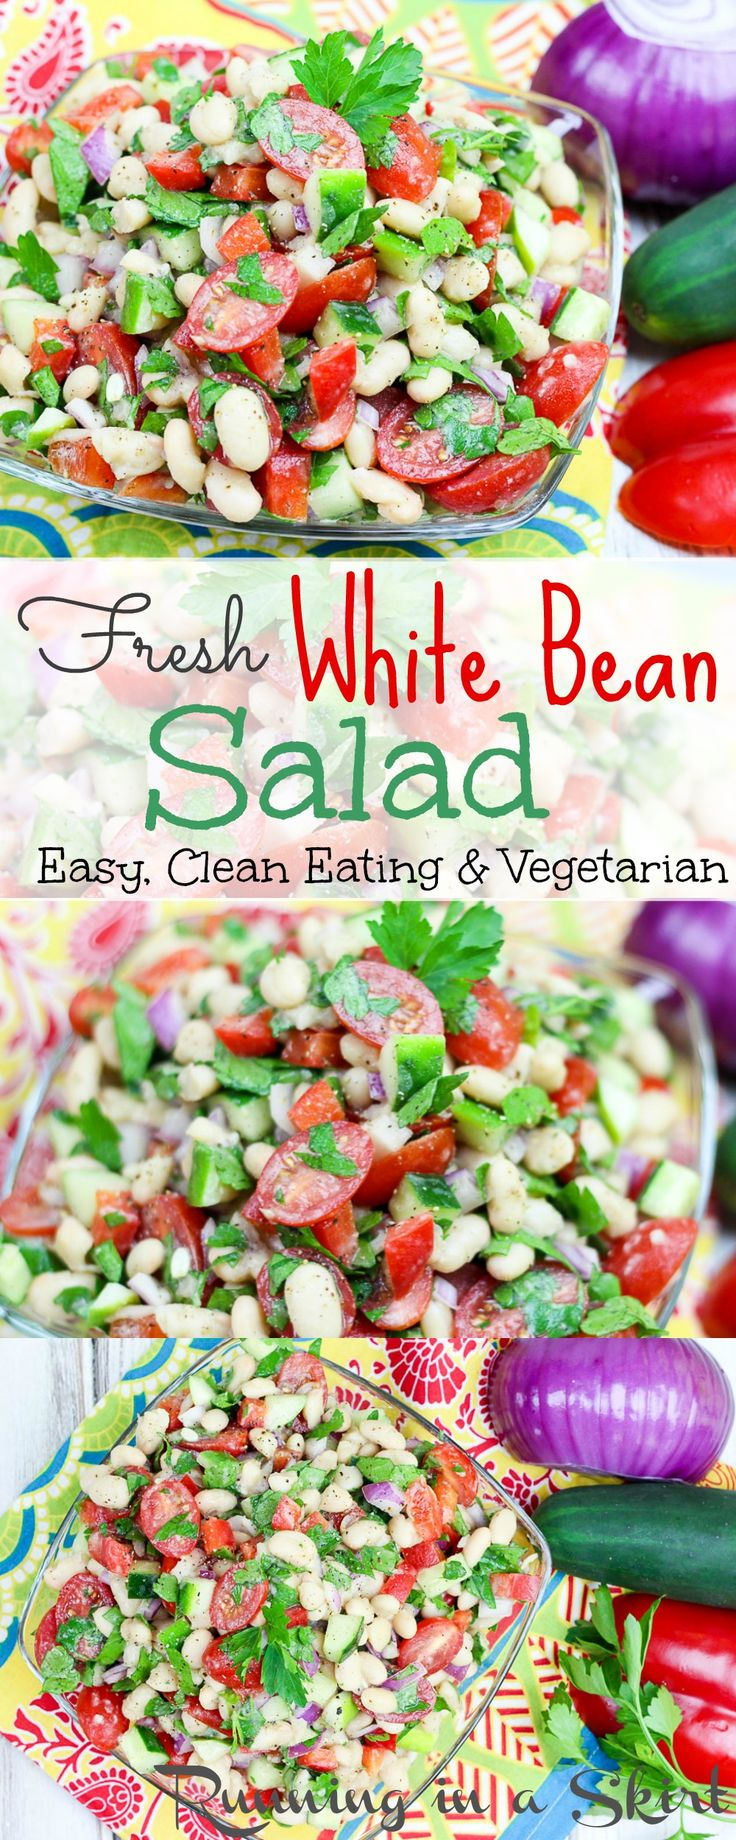 Fresh & Healthy White Bean Salad recipes!  An easy, simple, clean eating and vegan / vegetarian dish. Serve room temperature or cold!  Packed with fresh summer veggies.  Serve as a hearty side dish, vegan main dish or over a bed of greens. Perfect for a cookout or weeknight dinners. / Running in a Skirt